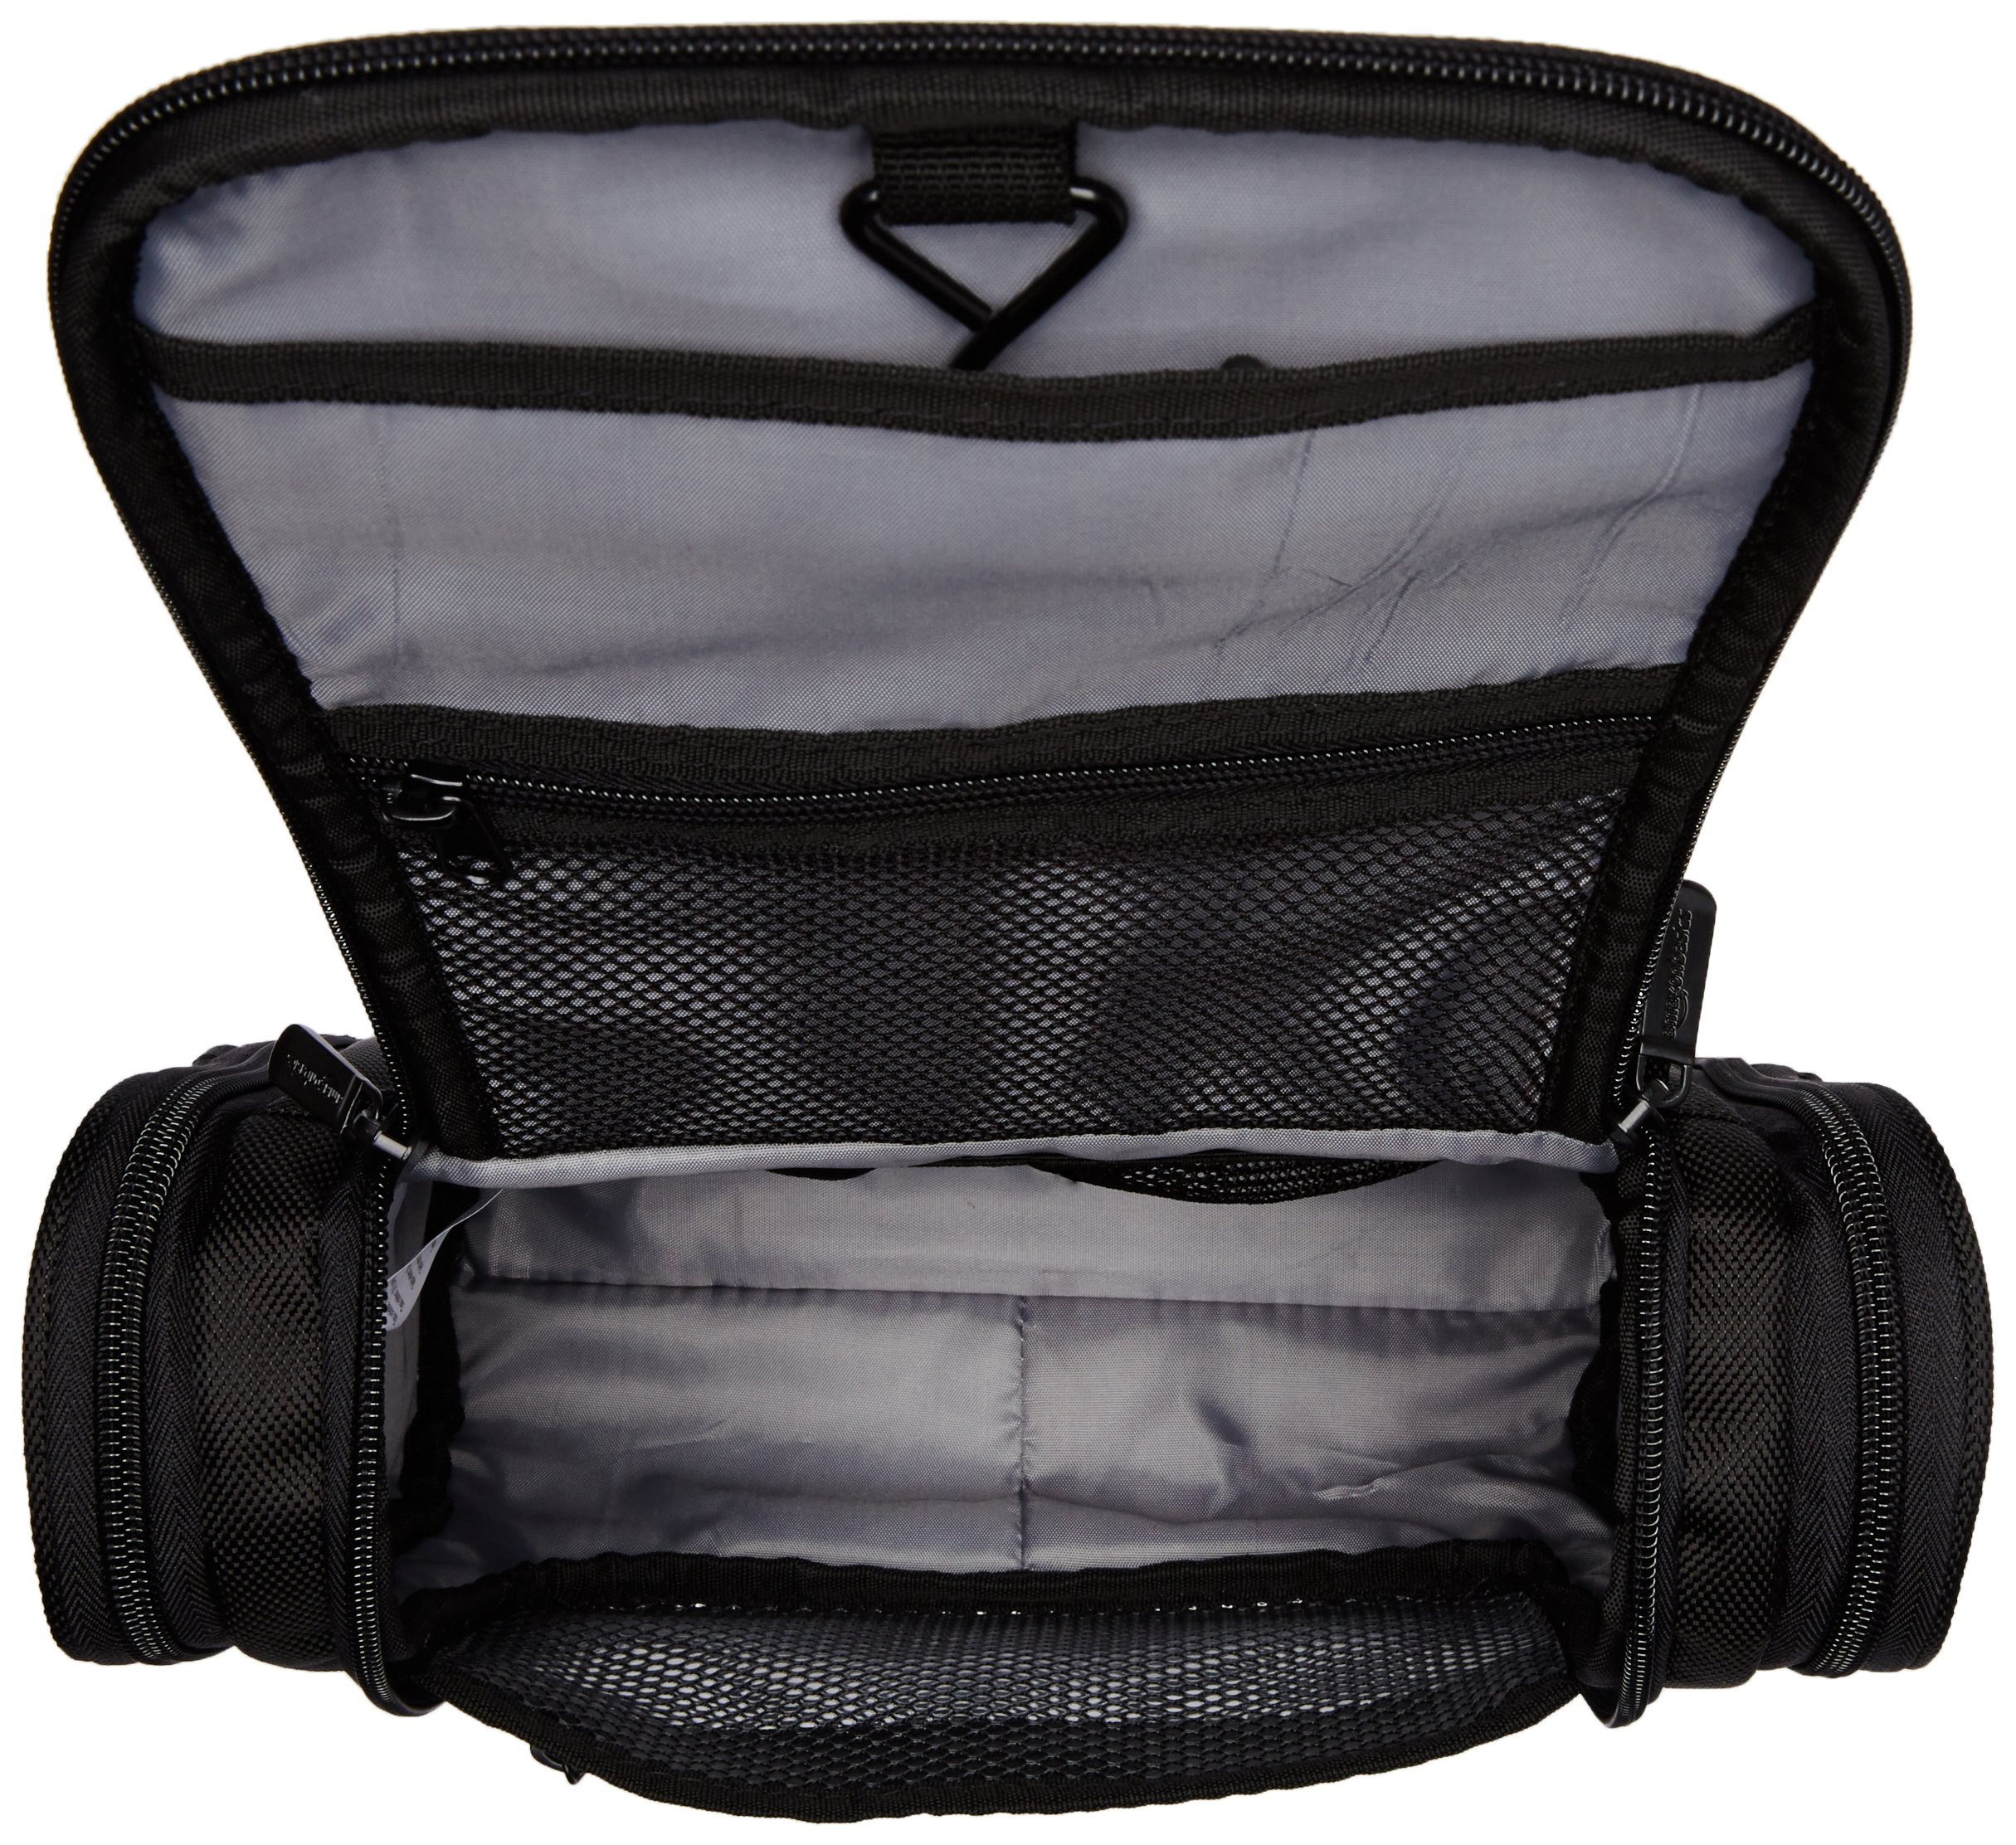 AmazonBasics-Hanging-Toiletry-Kit-Black